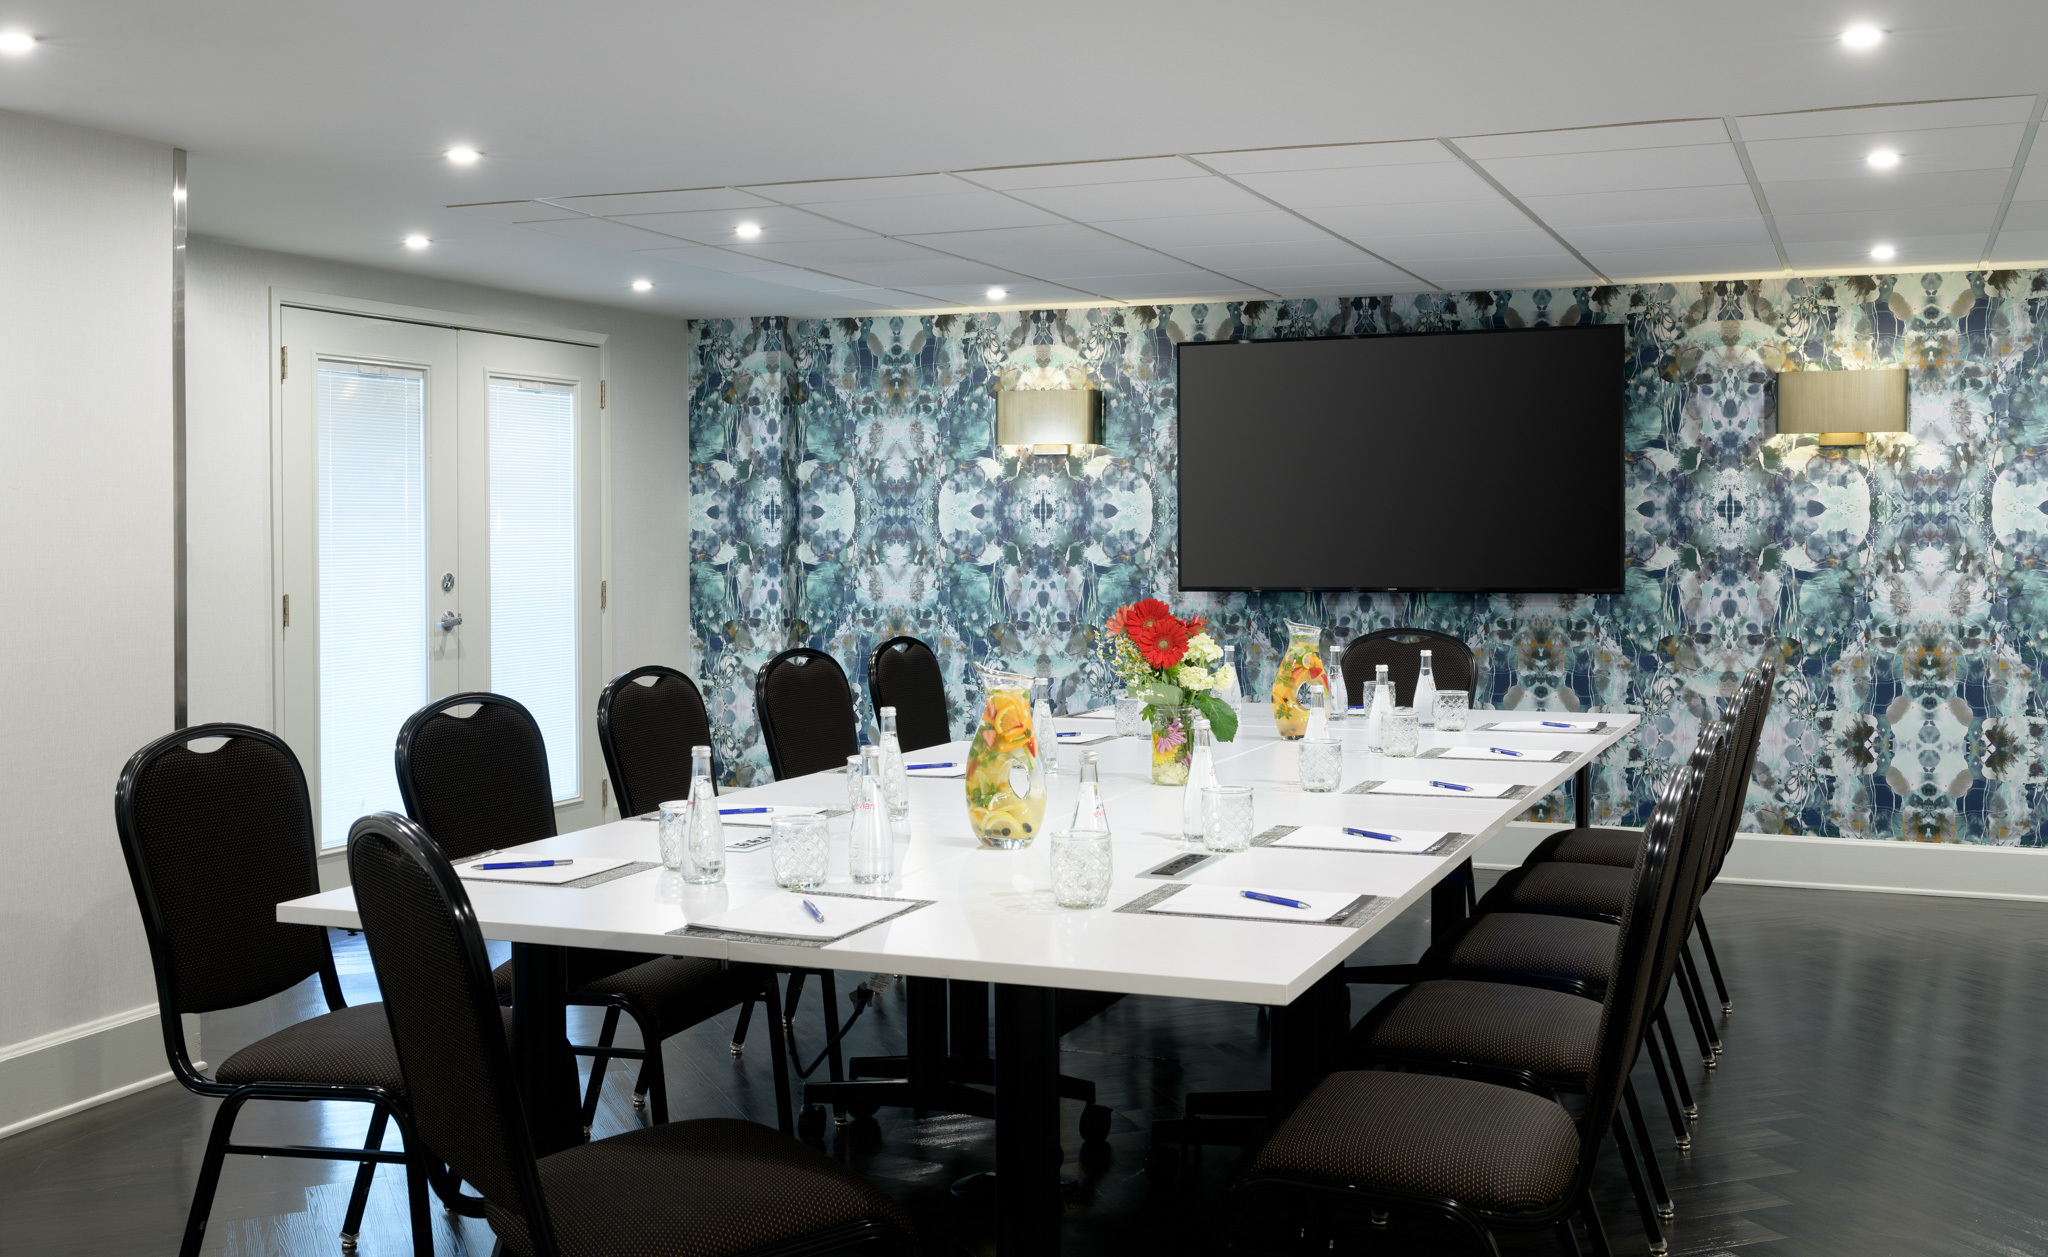 bring your meeting to Chamberlain with our functional and stylish meeting room.